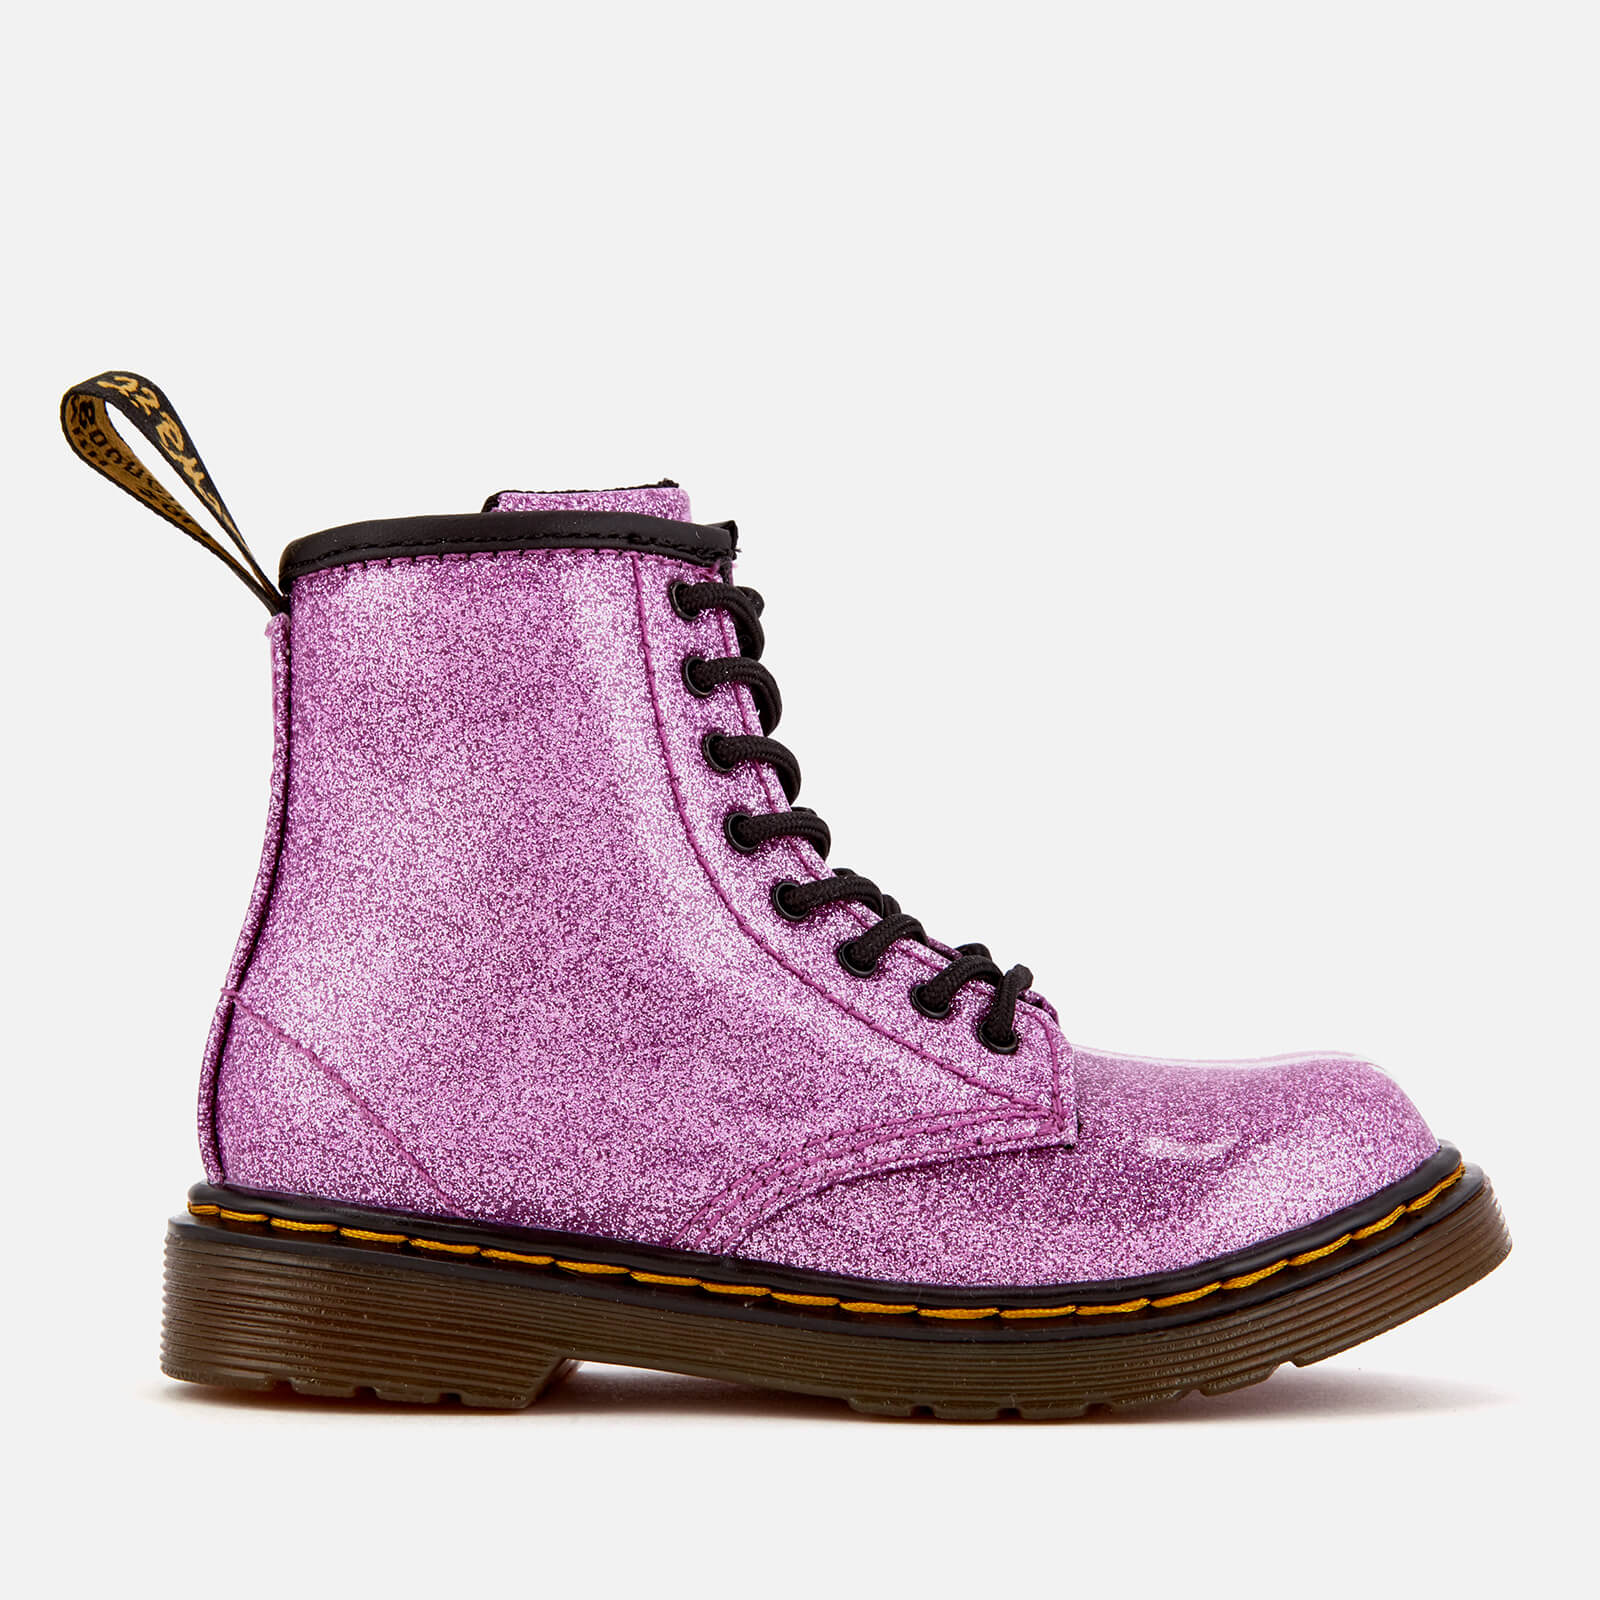 ee4695d5bc70 Dr. Martens Kids' 1460 T Glitter Lace Up Boots - Dark Pink | FREE UK  Delivery | Allsole